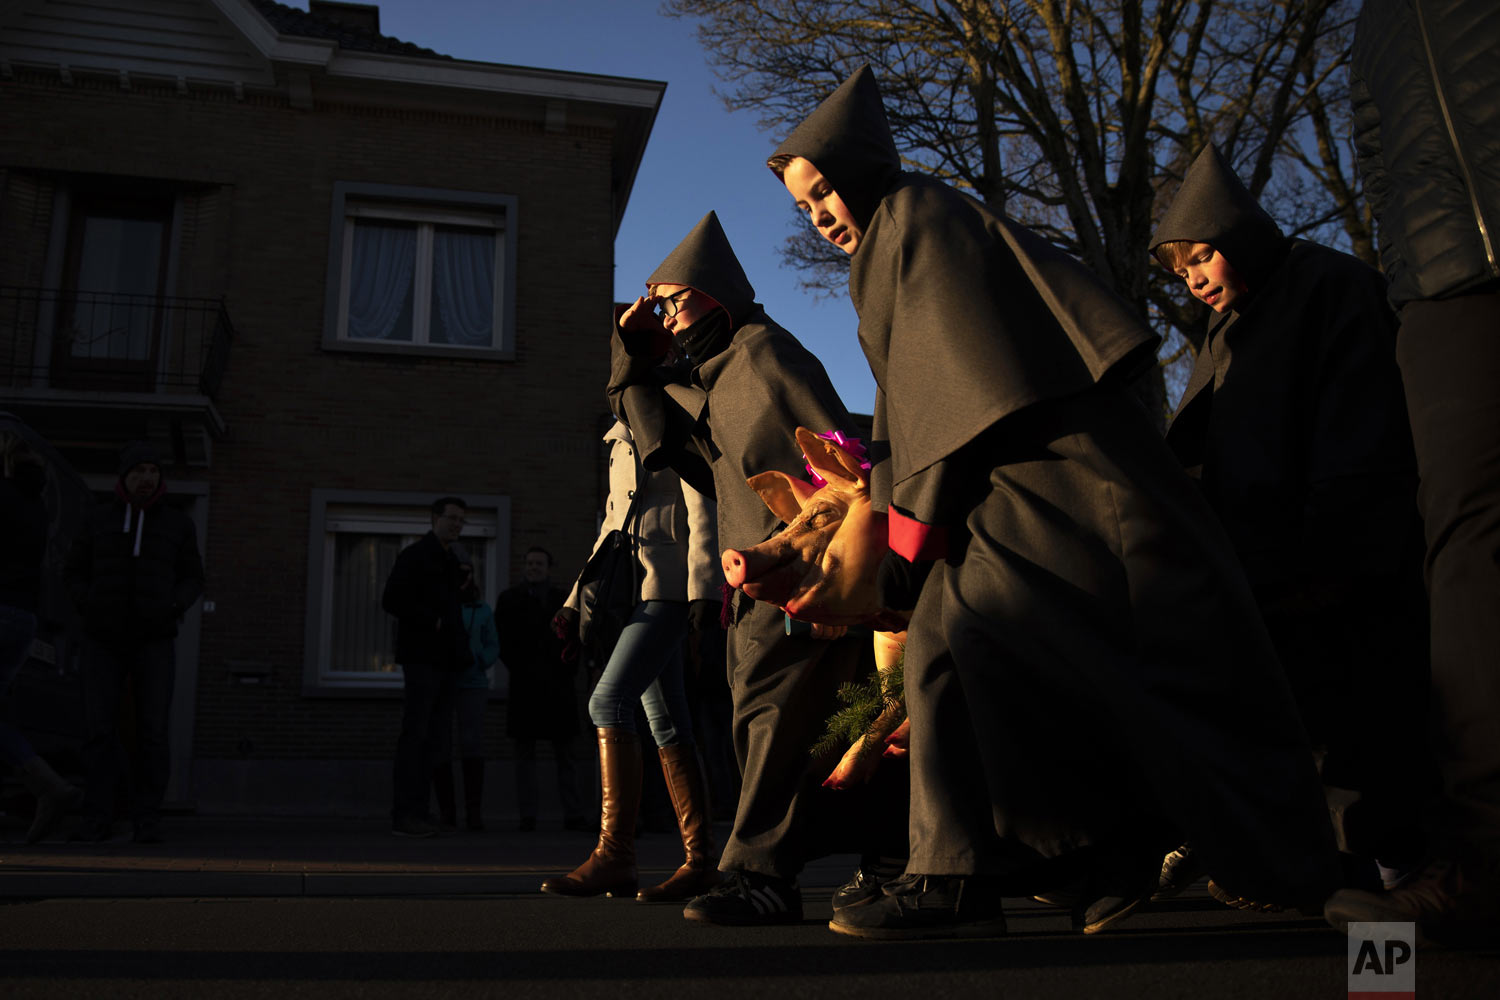 Hooded youths carry a slaughtered pig to a church during Saint Anthony celebrations in the village of Ingooigem, Belgium, on Sunday, Jan. 20, 2019. During the local celebration for the patron saint of animals, hooded twelve-year-olds along with other children bring killed hogs and small farm animals in a short procession to the church to celebrate a Mass. After the mass, pigs are sold in a public auction while the offered farm animals are raffled among the people. (AP Photo/Francisco Seco)